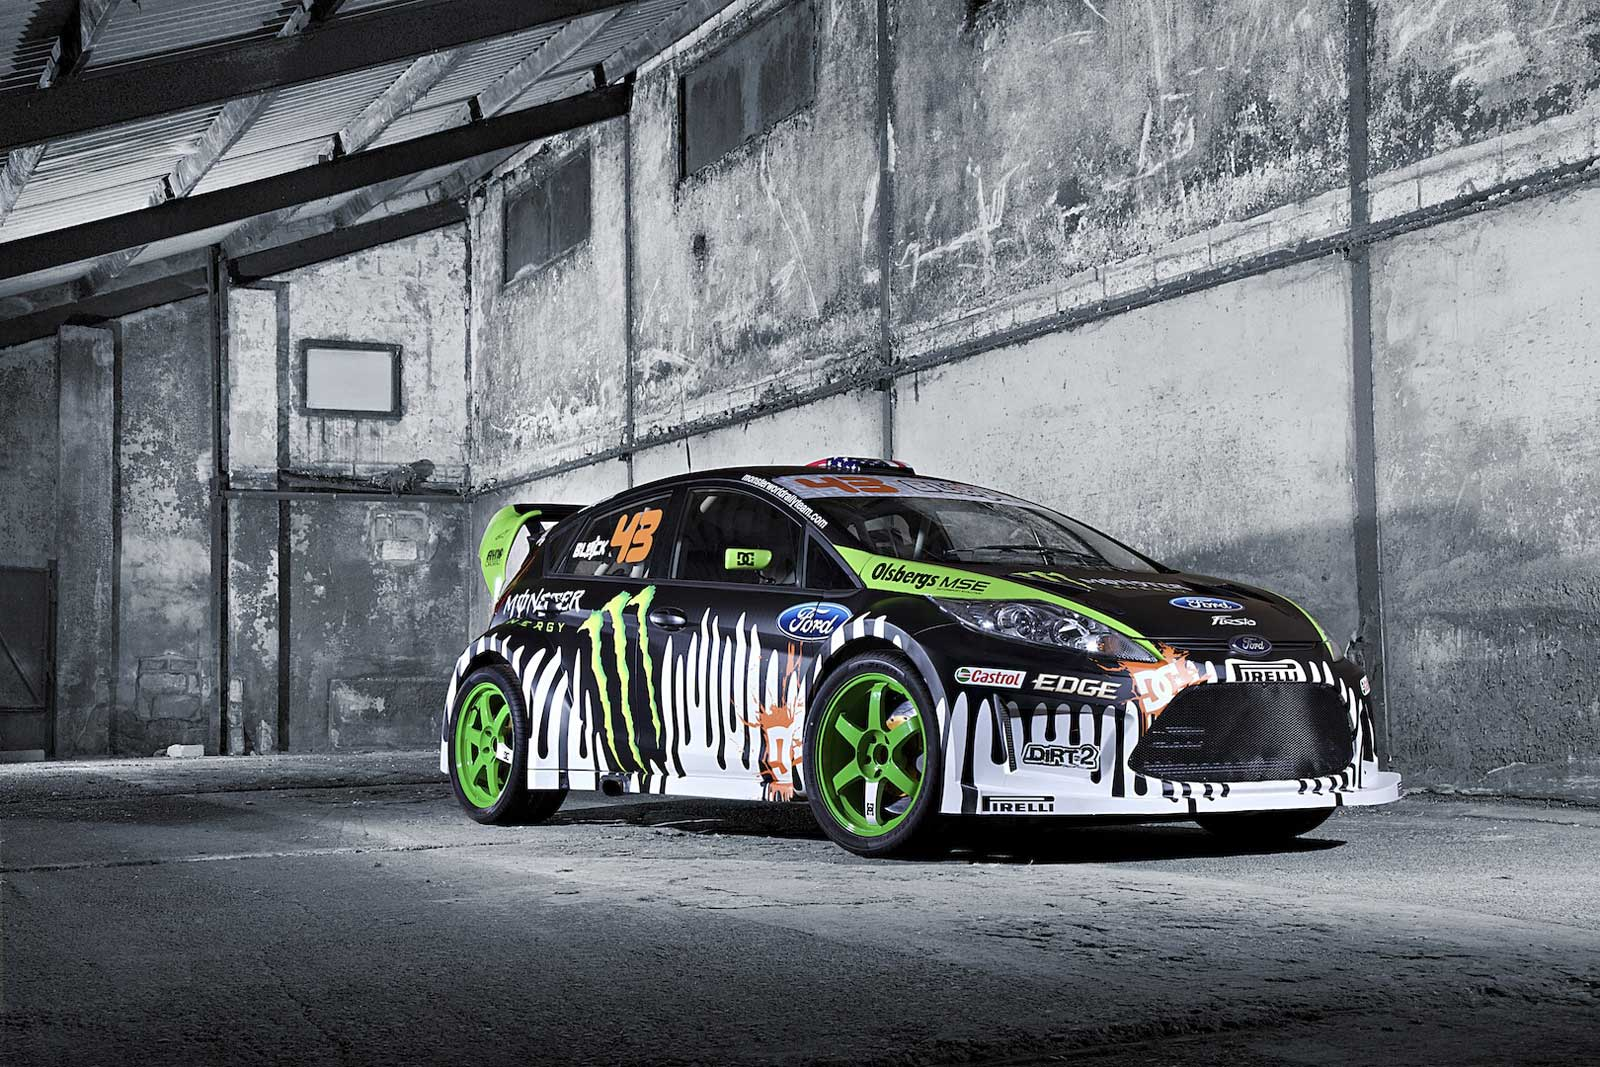 MY BLOG THE DOPE FORD FIESTA GYMKHANA KEN BLOCK EDITION AND COVERCAR 1600x1067